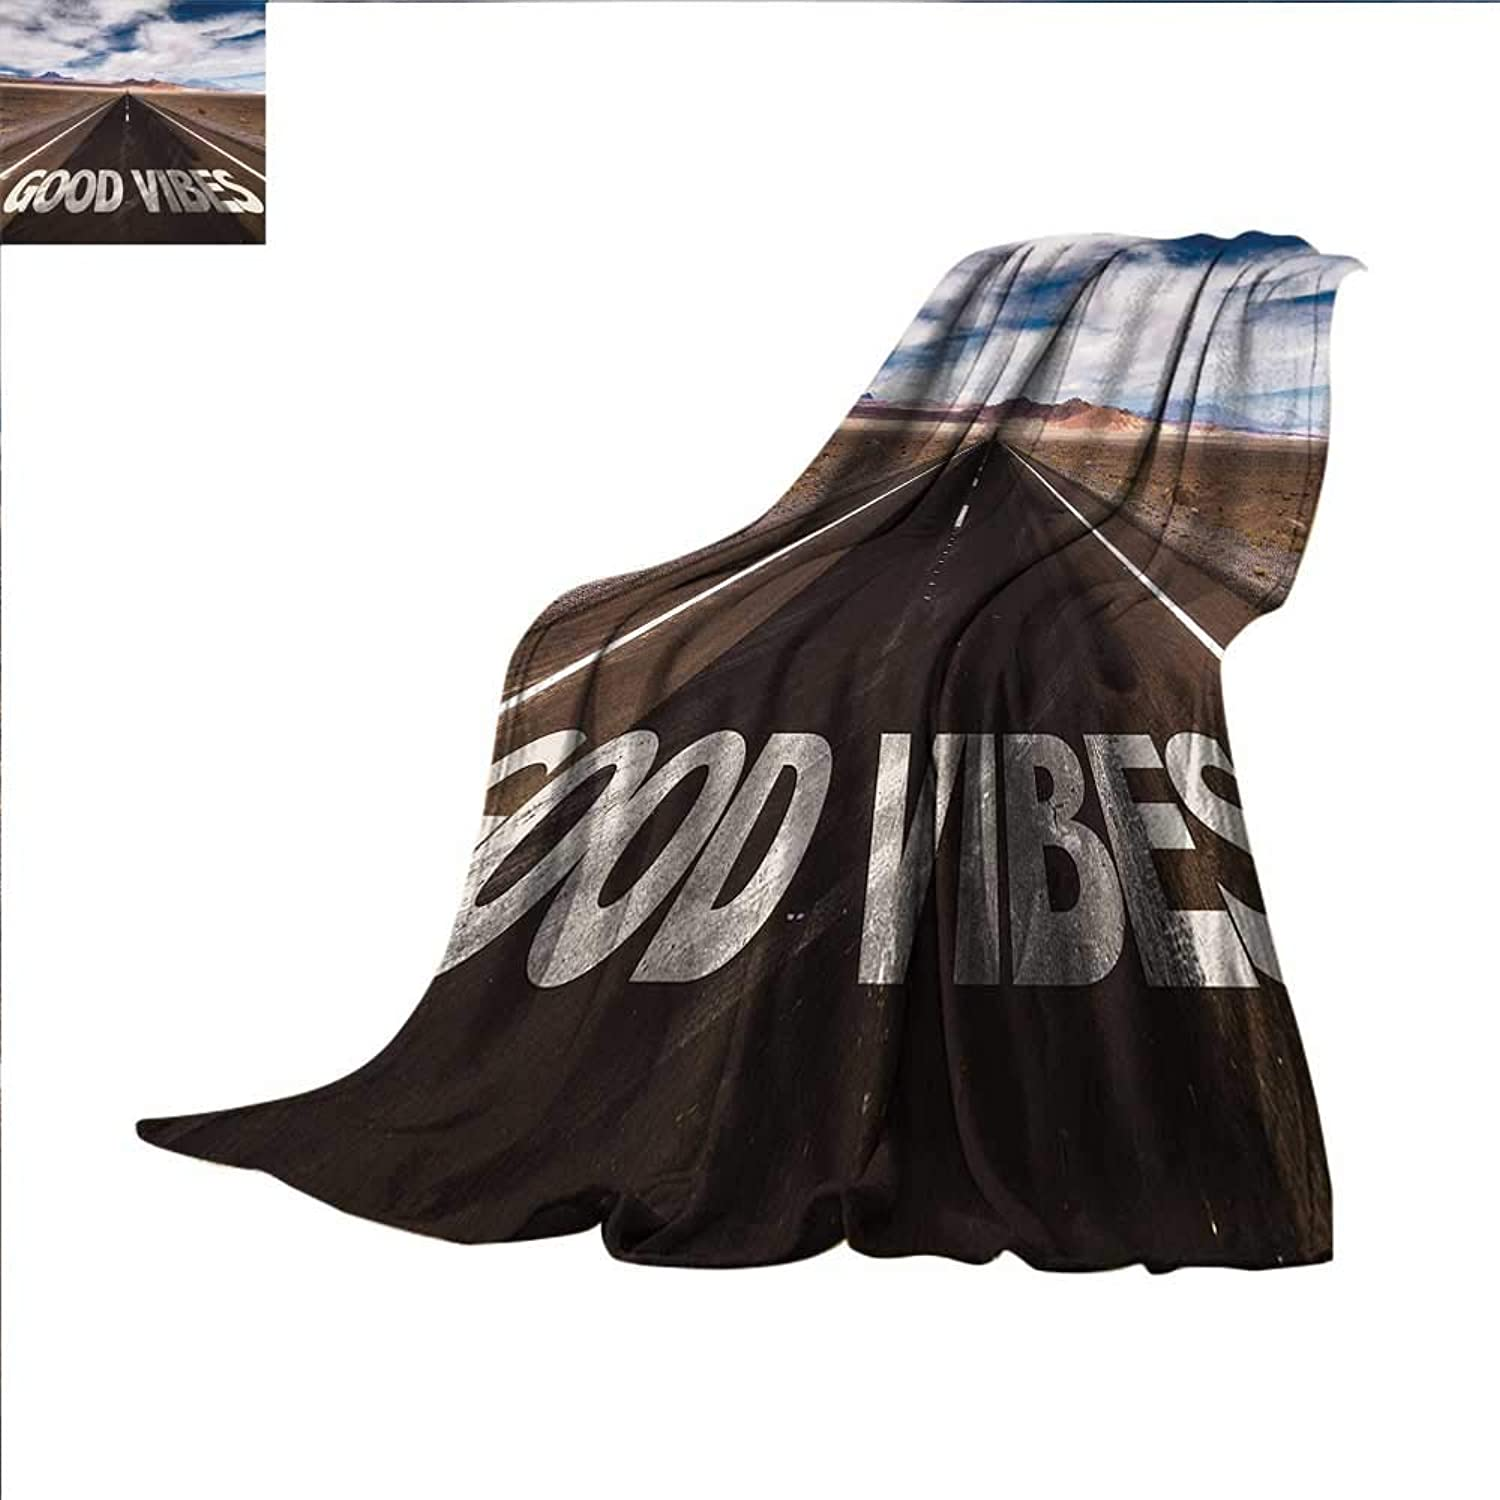 Smallbeefly Good Vibes Digital Printing Blanket Inspirational Phrase on Highway On The Road Theme Travel Enthusiasm Summer Quilt Comforter 60 x50  Brown Dark bluee White